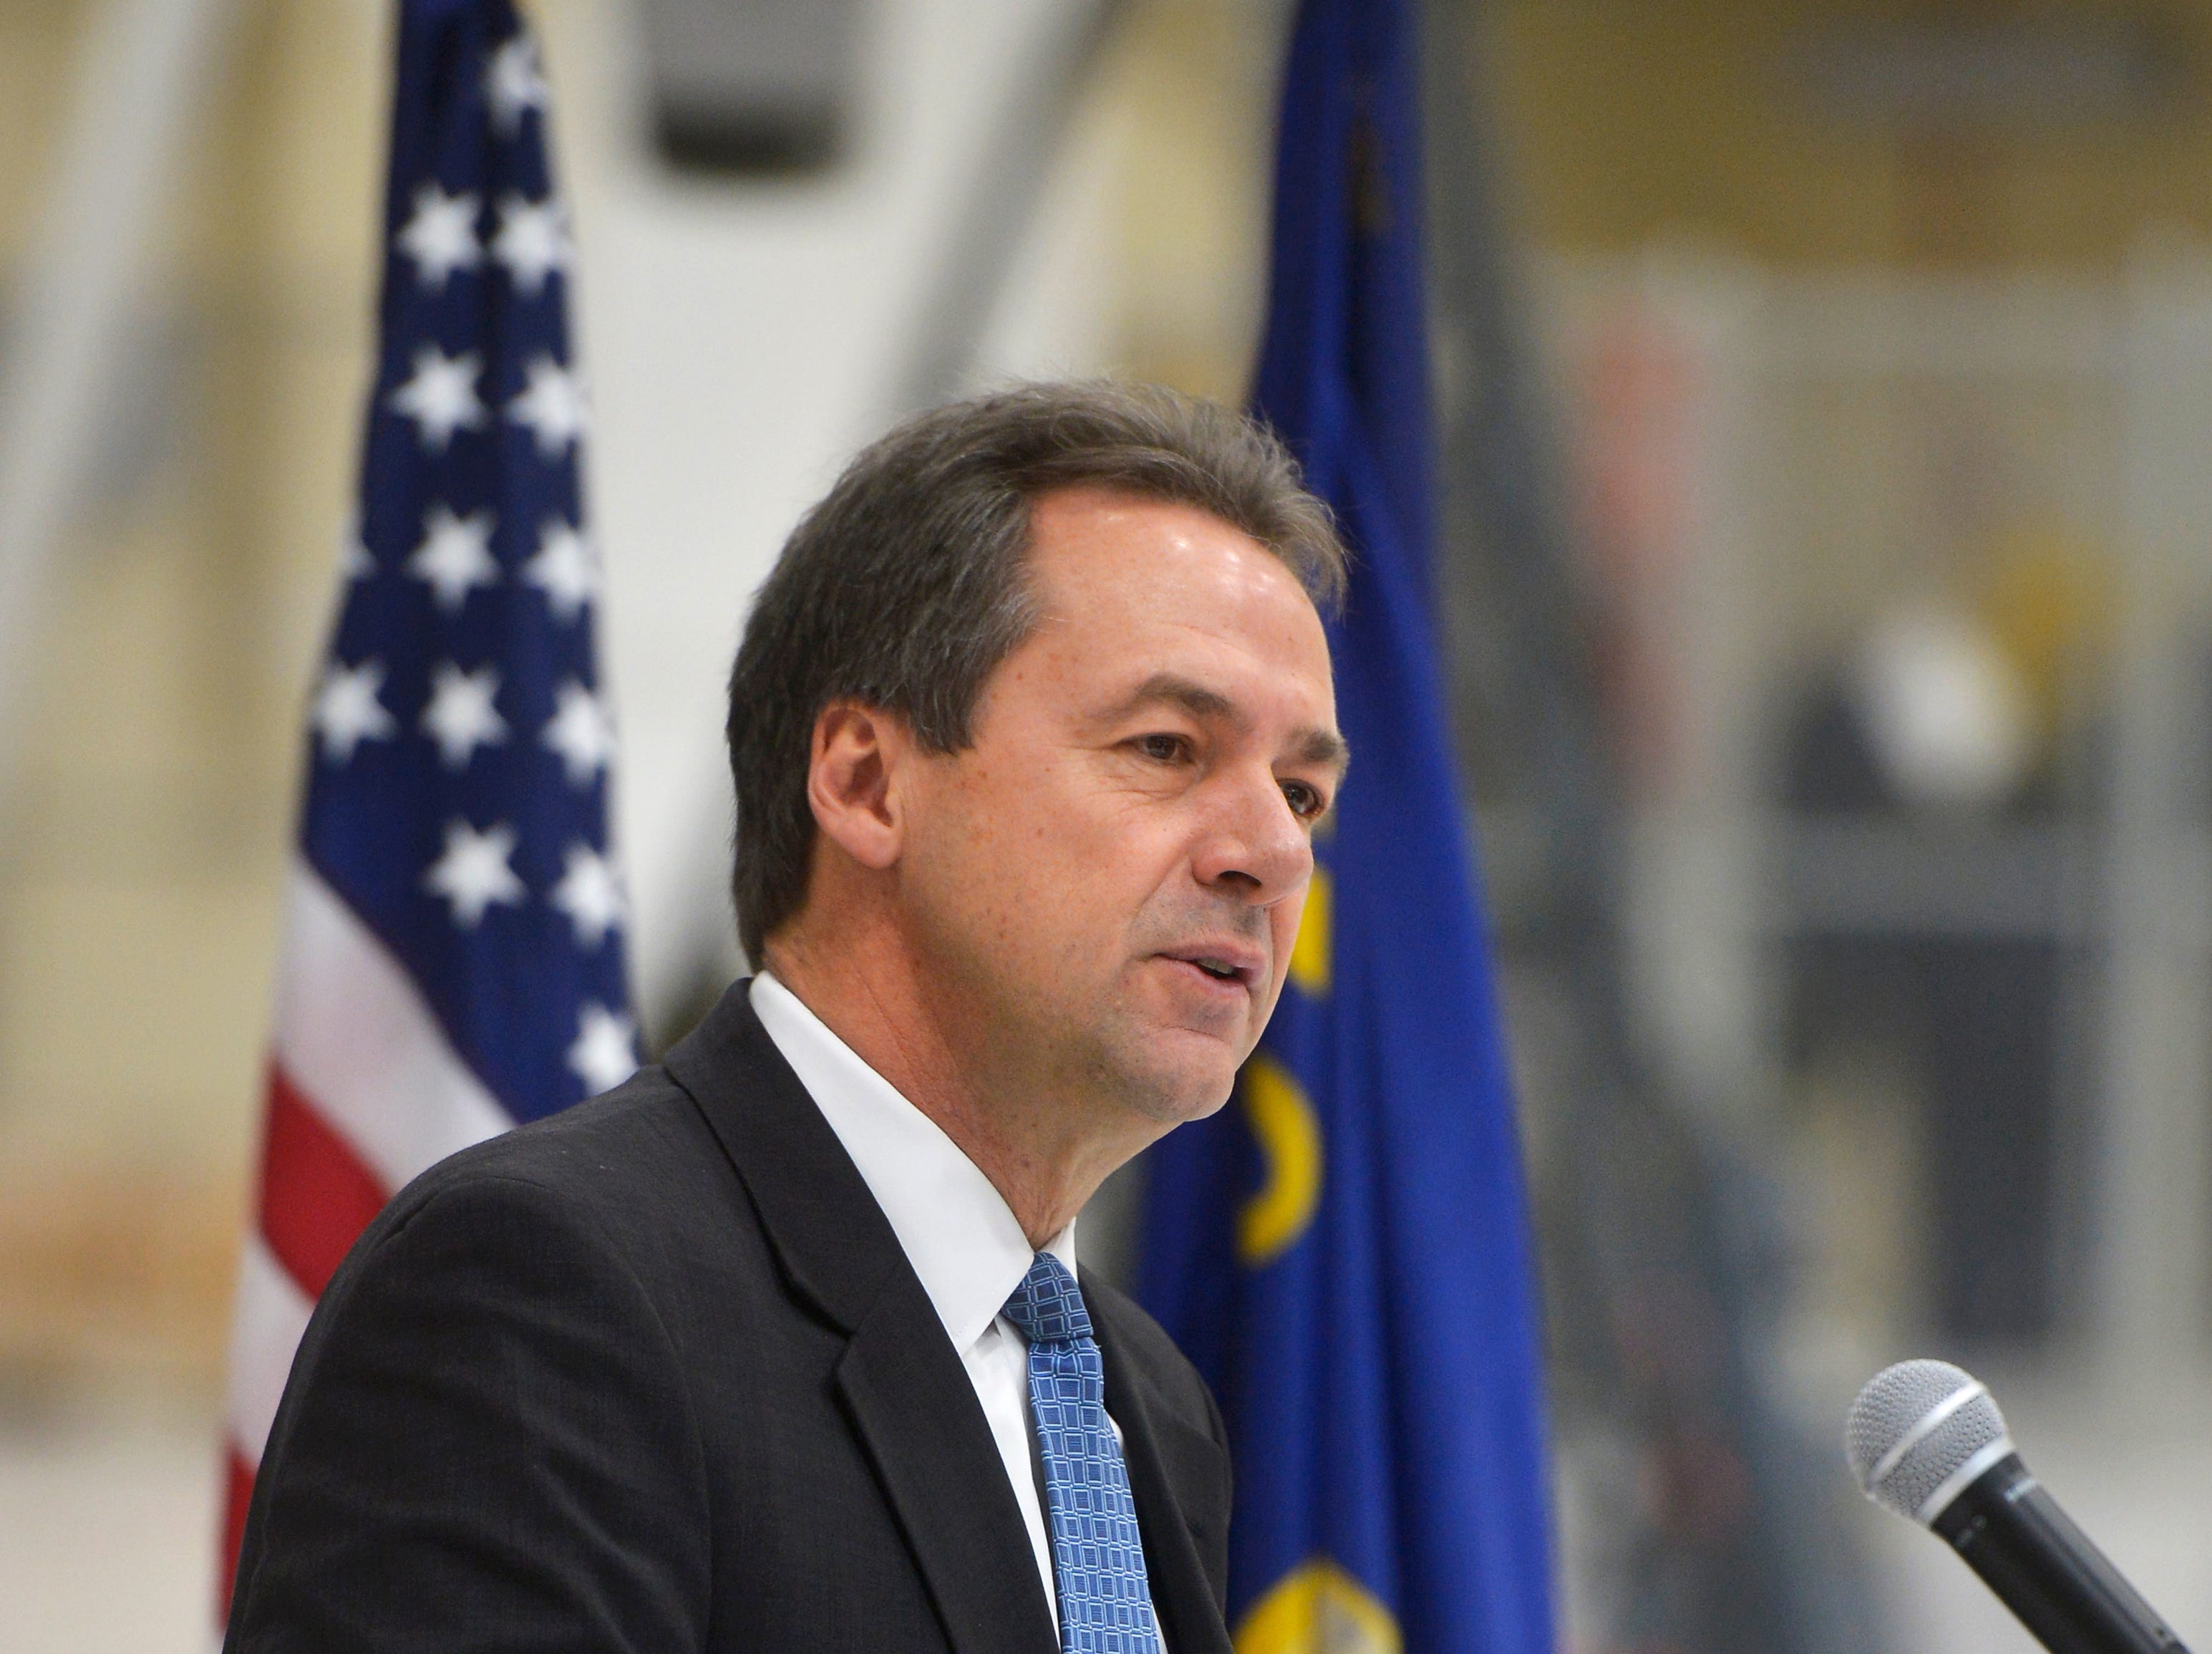 Gov. Steve Bullock makes his remarks during the fifth anniversary ceremony for the Veterans Treatment Court on Tuesday at the Montana Air National Guard.